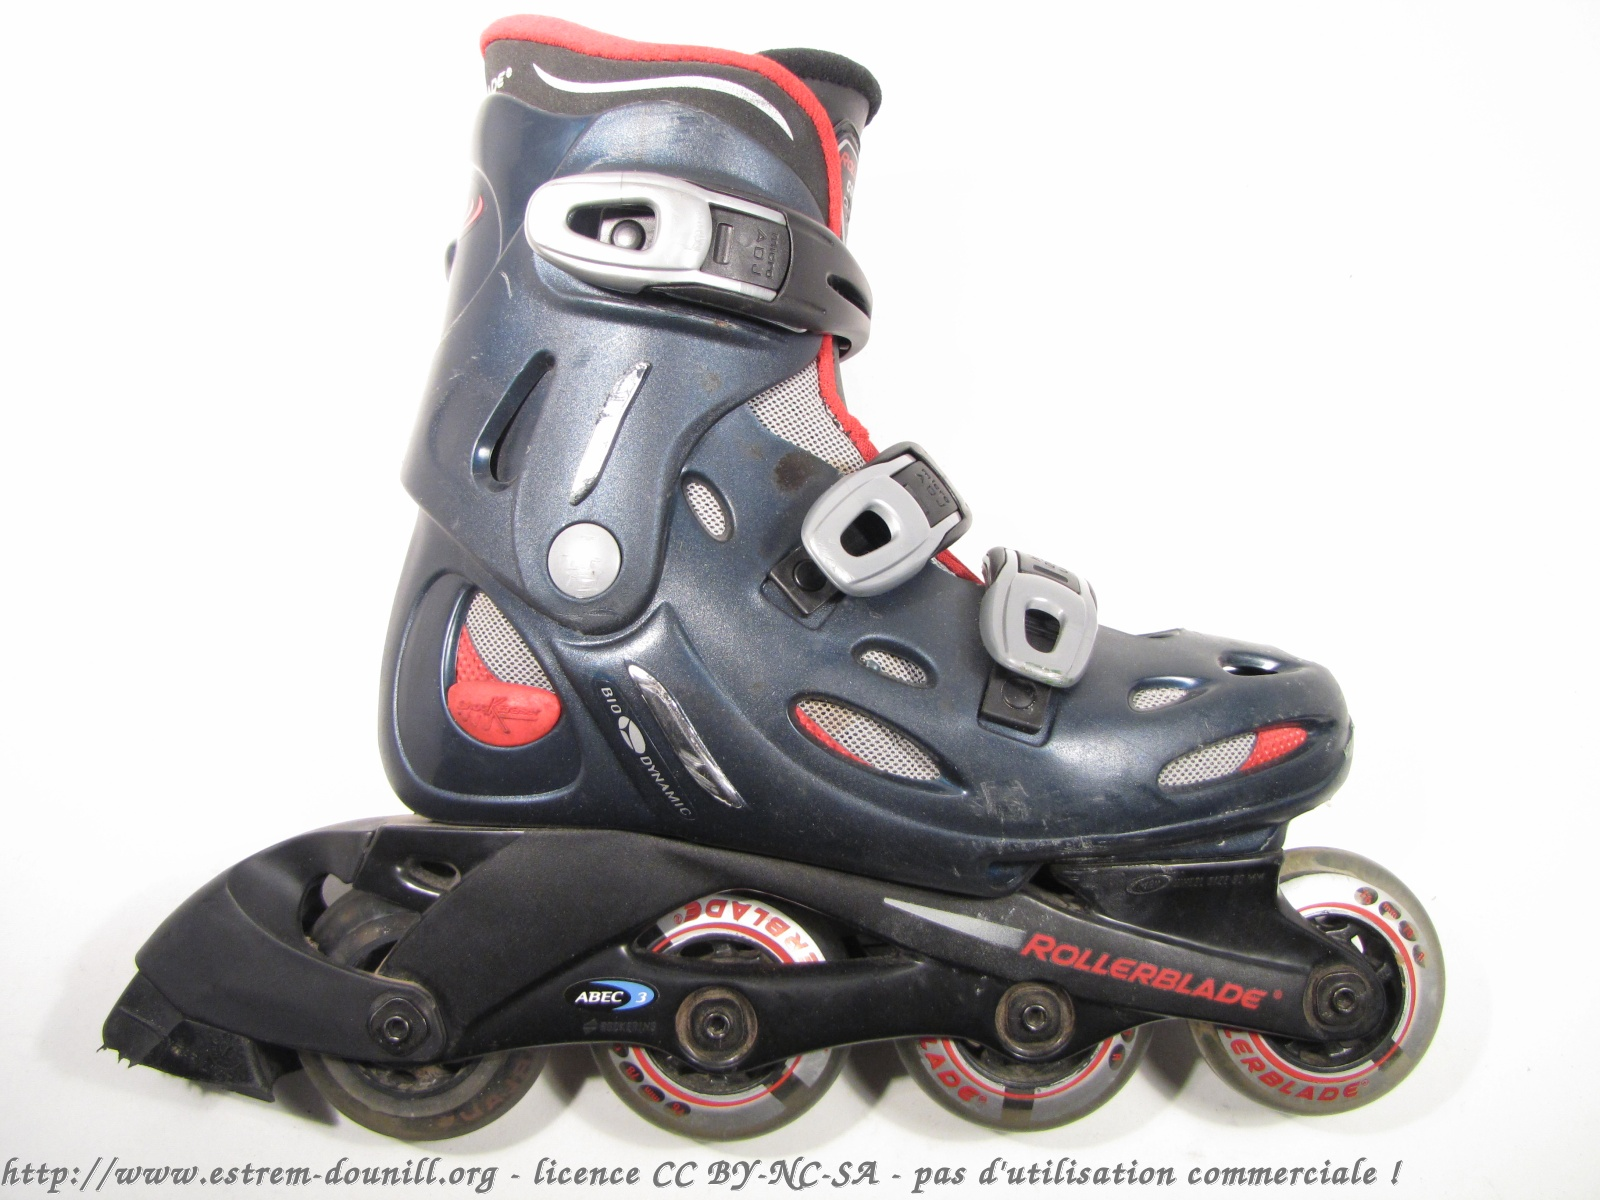 rollerblade_macro_progress_exterieur